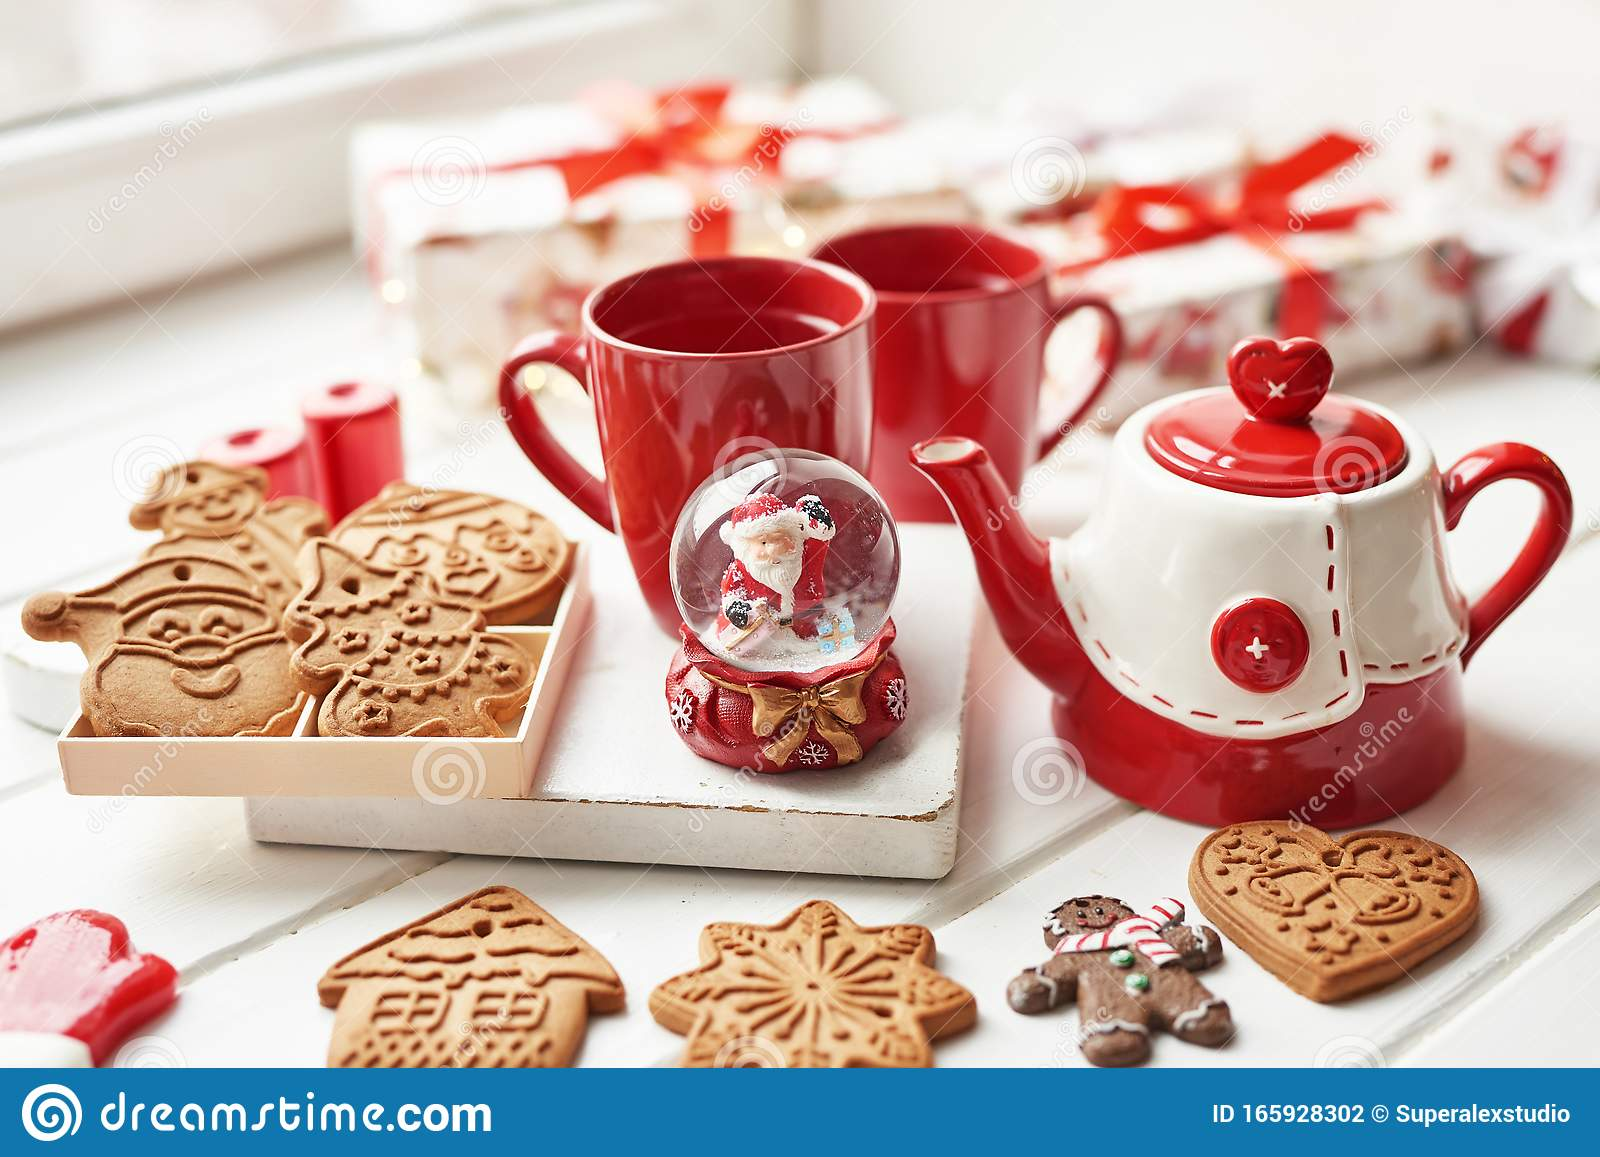 Christmas Cookies And Mug Of Hot Tea Christmas Time Christmas Gingerbread Candy Coffee In Red Cup On Wooden Table On Frosty Stock Photo Image Of Background Cake 165928302